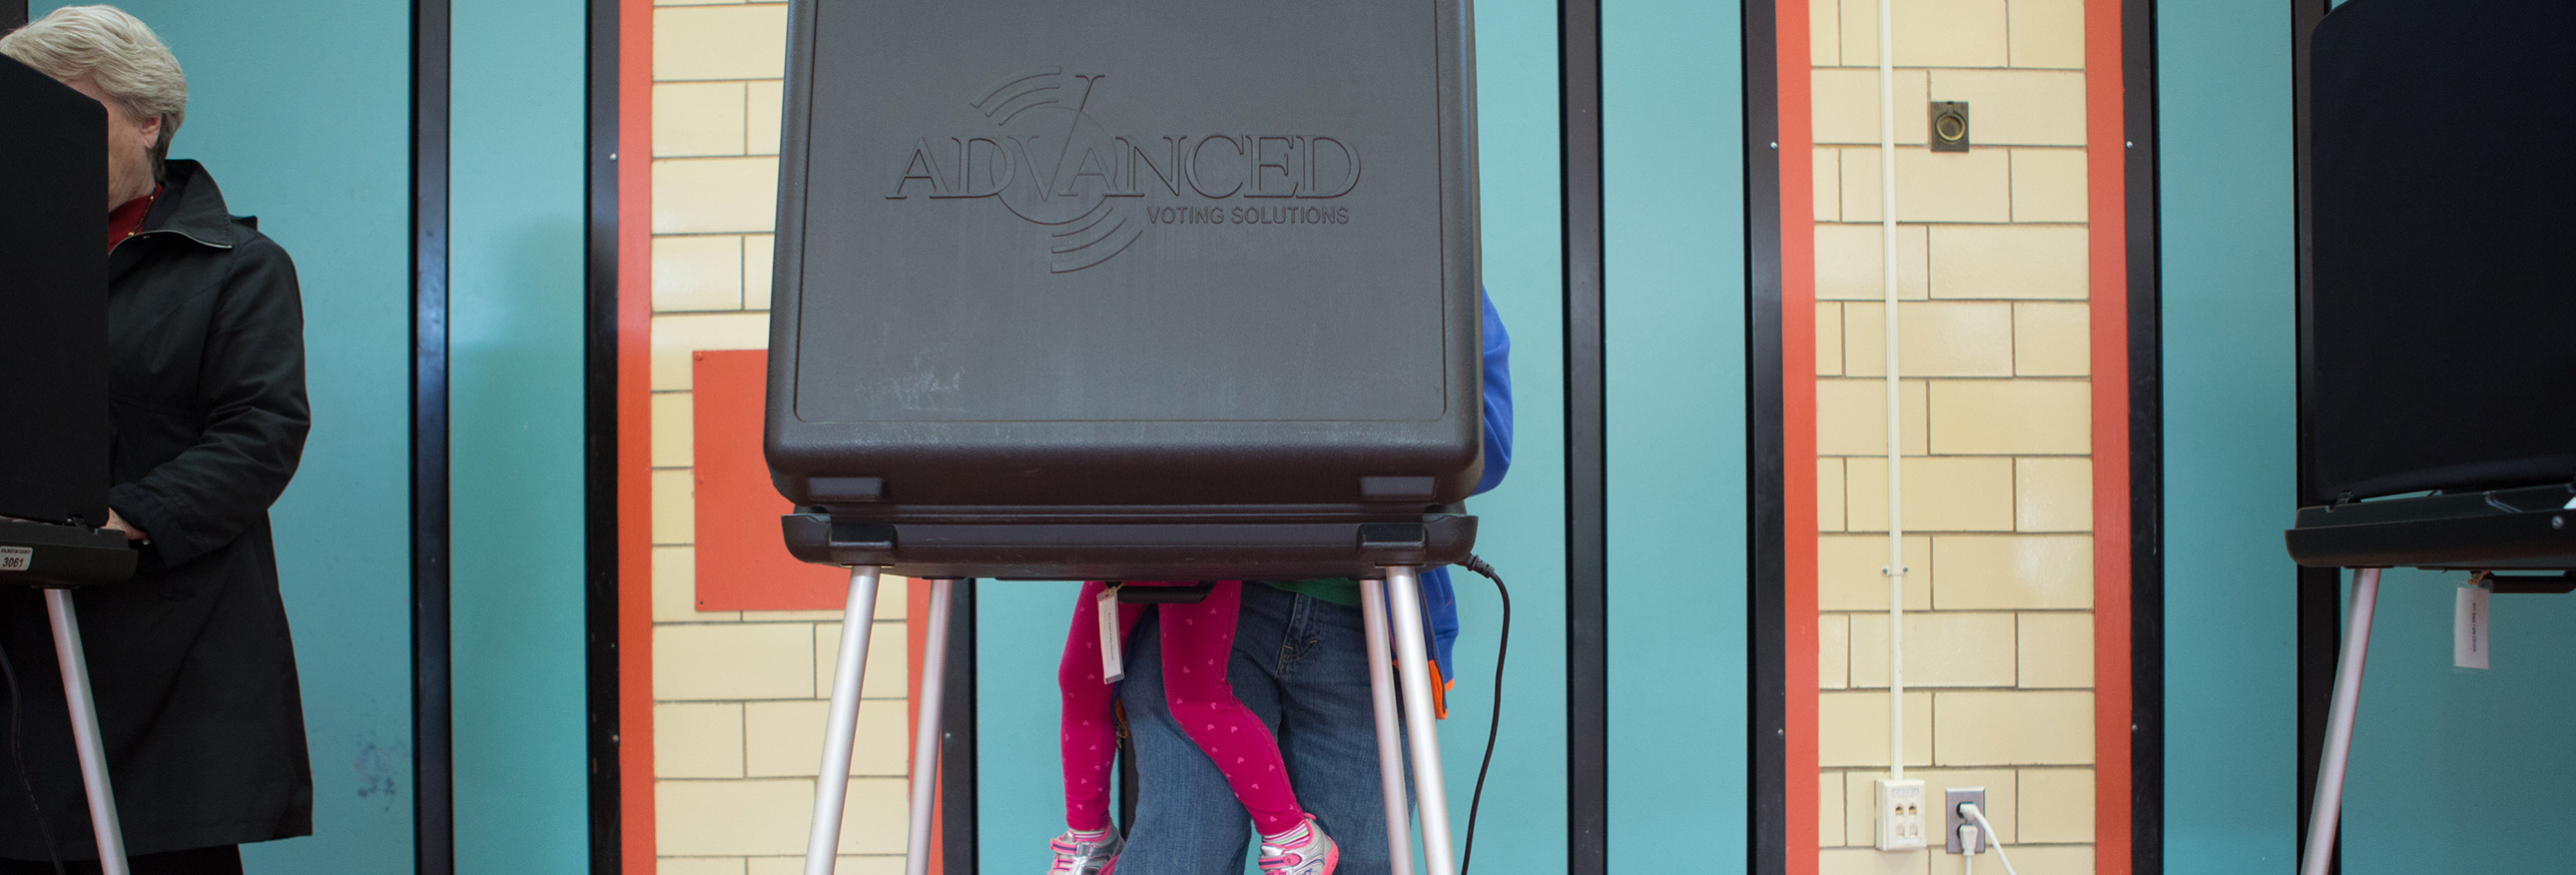 parent and childs legs behind a voting booth